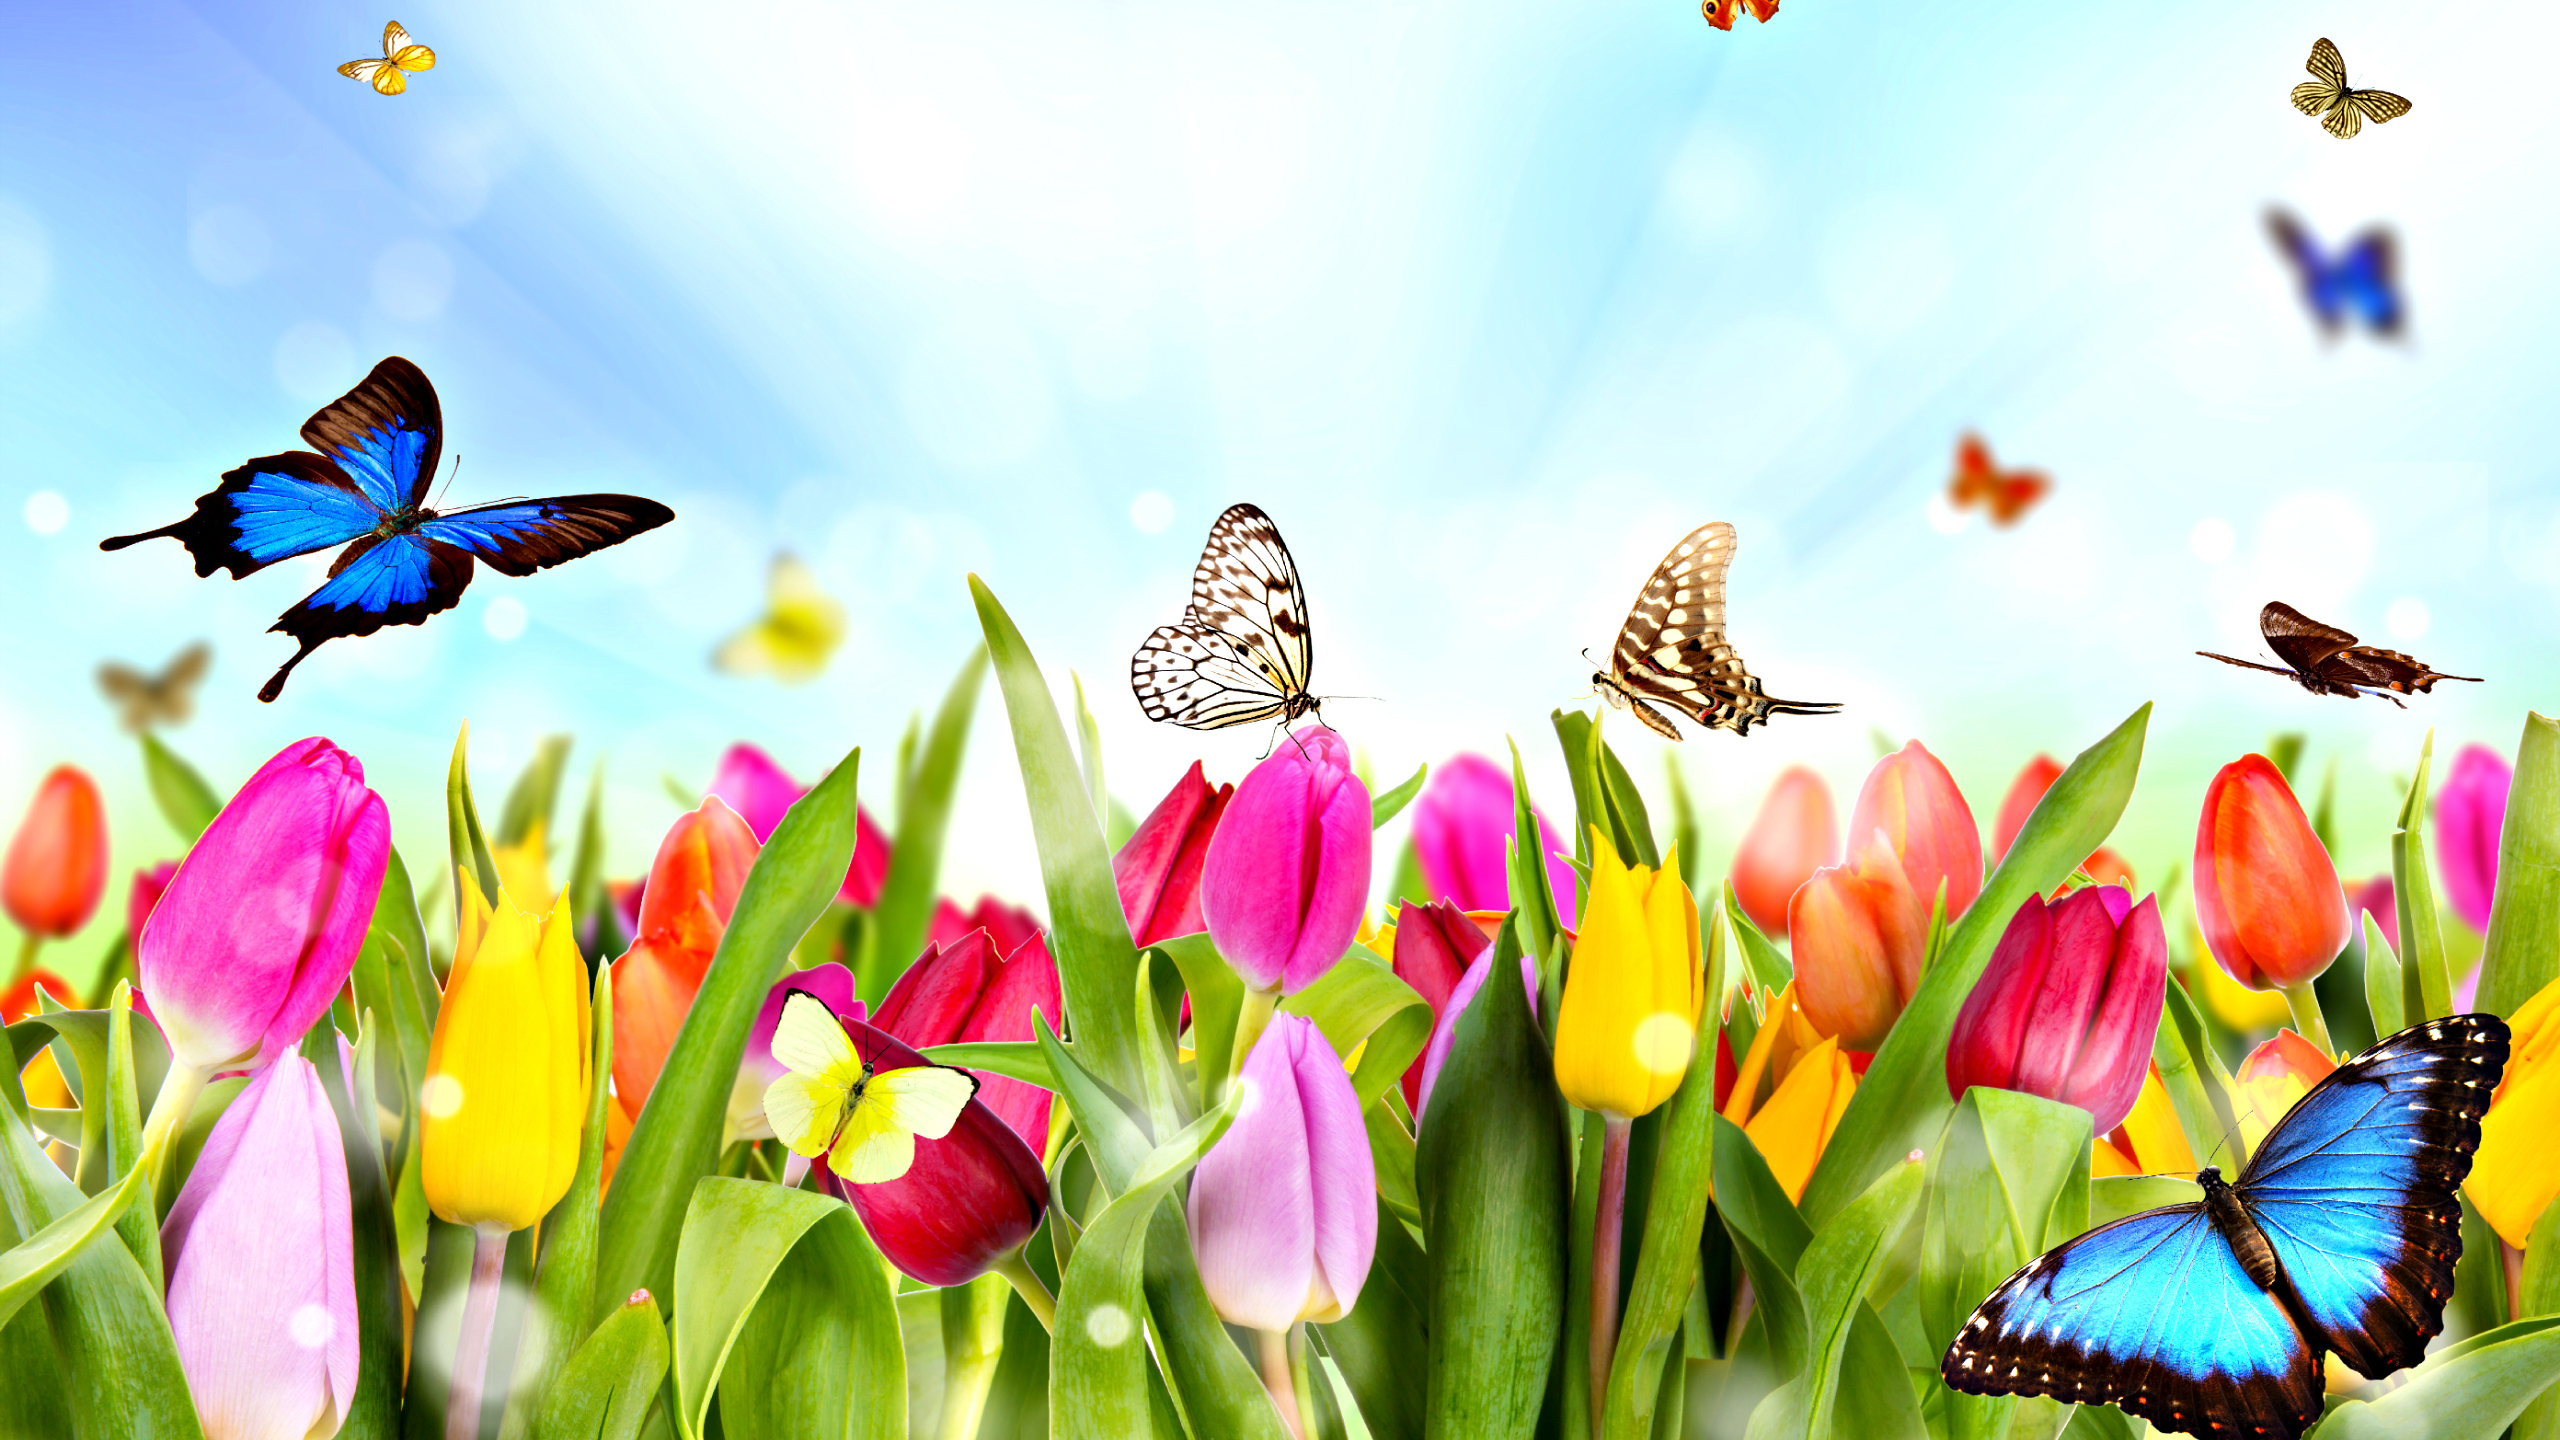 Nature Spring Free Desktop Wallpapers For Widescreen Hd